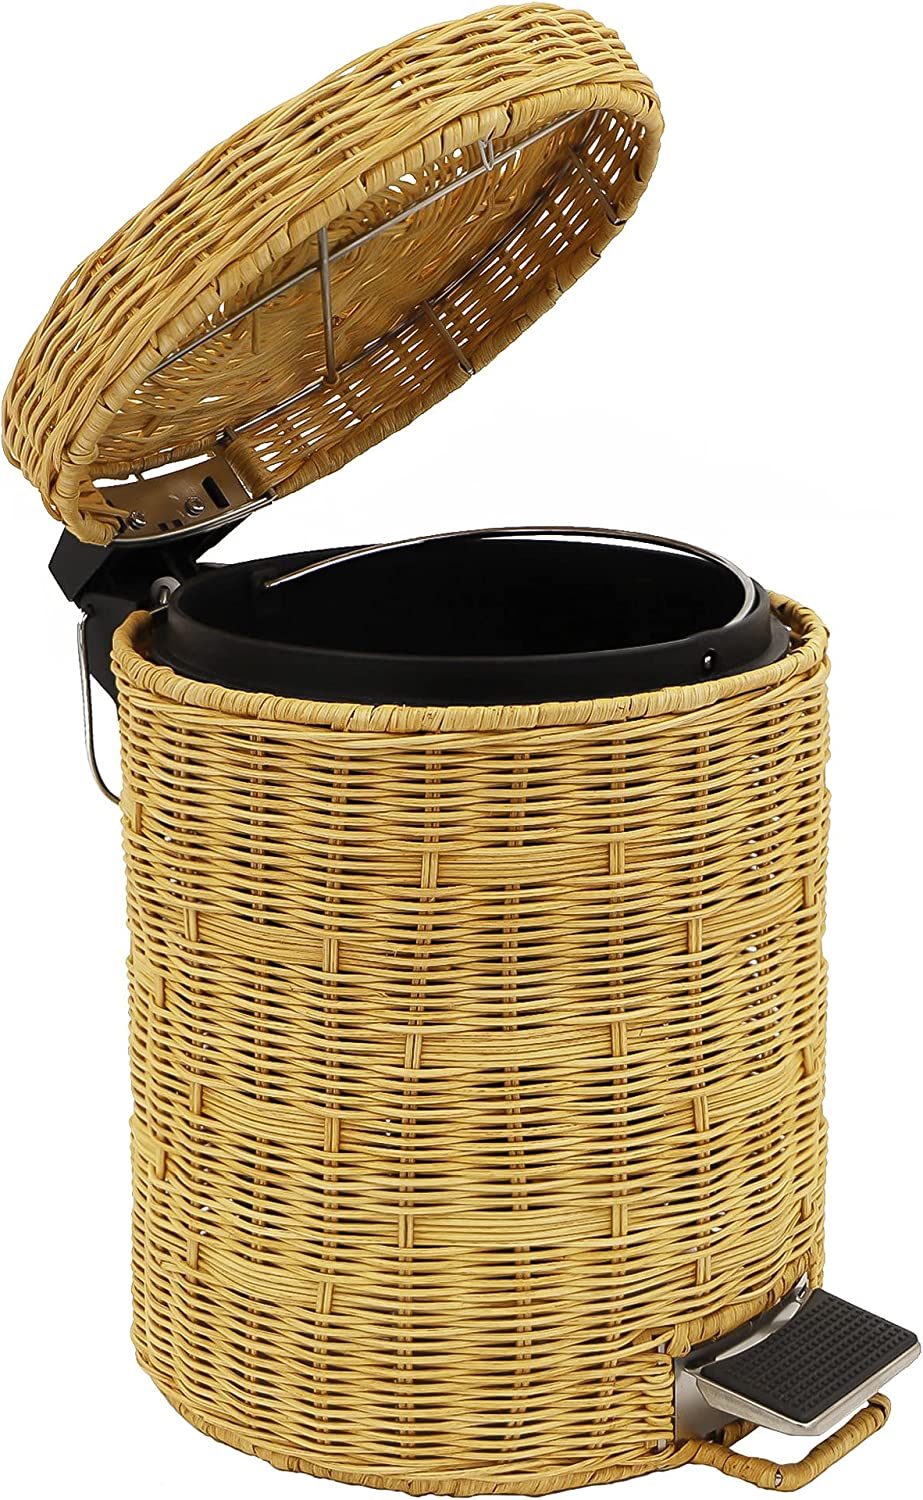 Free Shipping Cheap Bargain Gift Wicker Trash free Can with lid Step Bathroom Rattan Handwoven